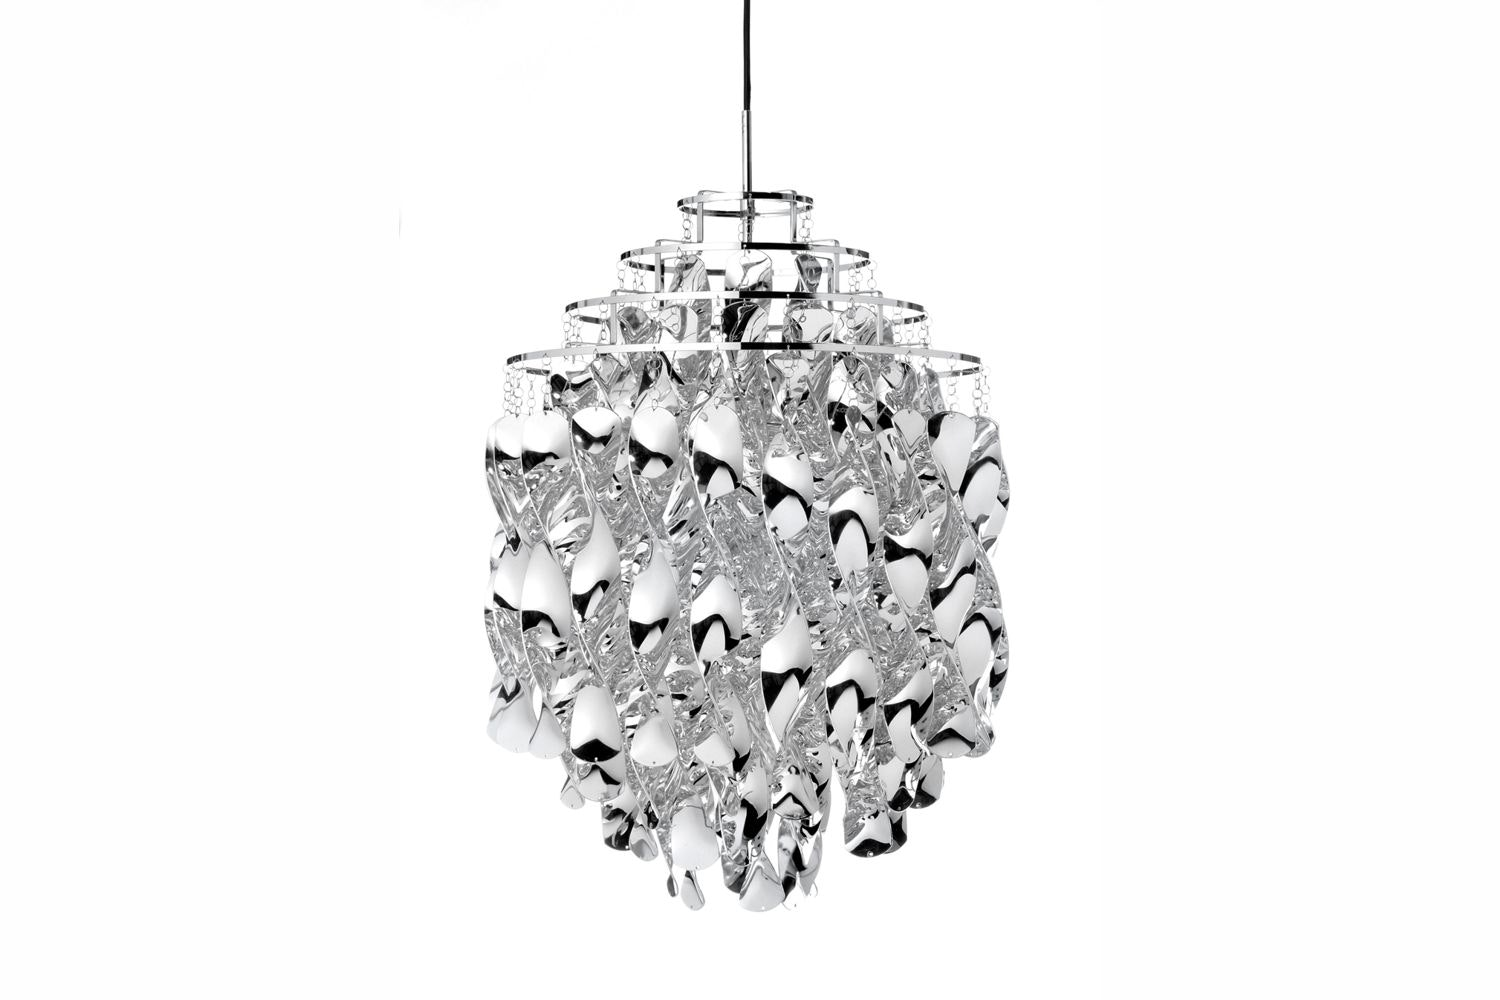 Spiral Pendant Lamp in Silver by Verner Panton for Verpan